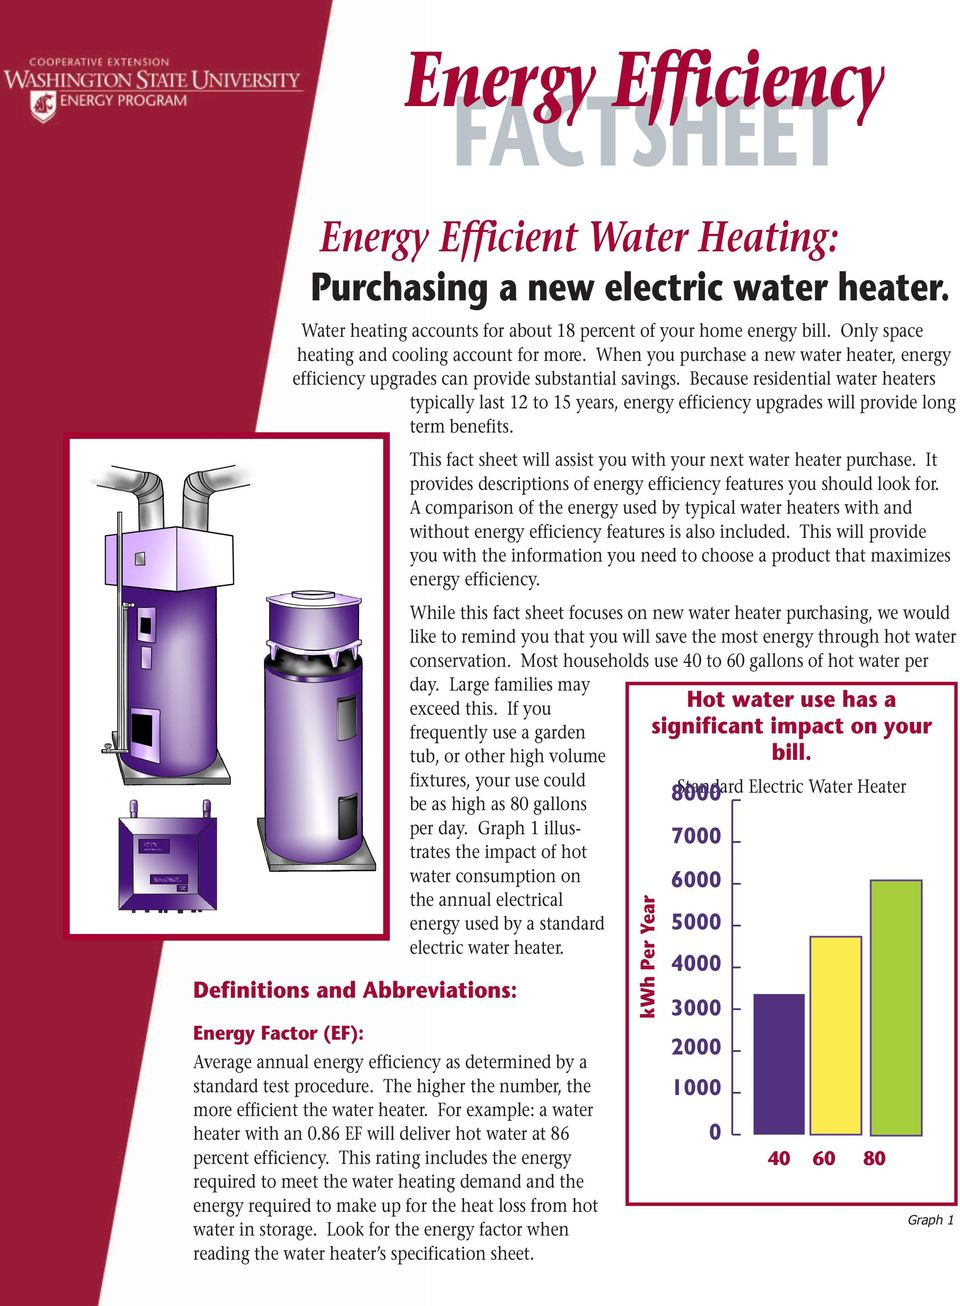 Because residential water heaters typically last 12 to 15 years, energy efficiency upgrades will provide long term benefits. This fact sheet will assist you with your next water heater purchase.